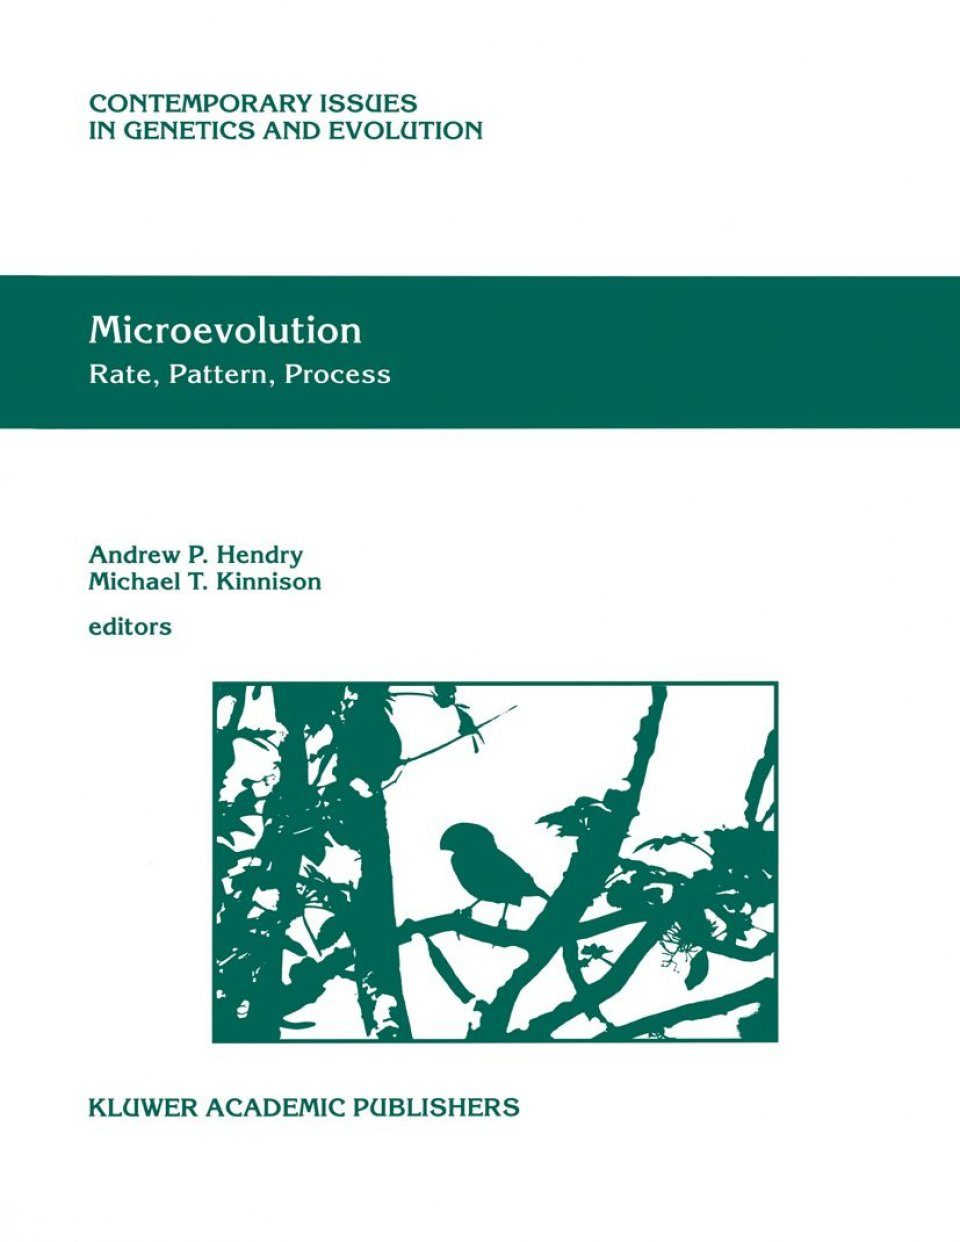 Microevolution: Rate, Pattern, Process